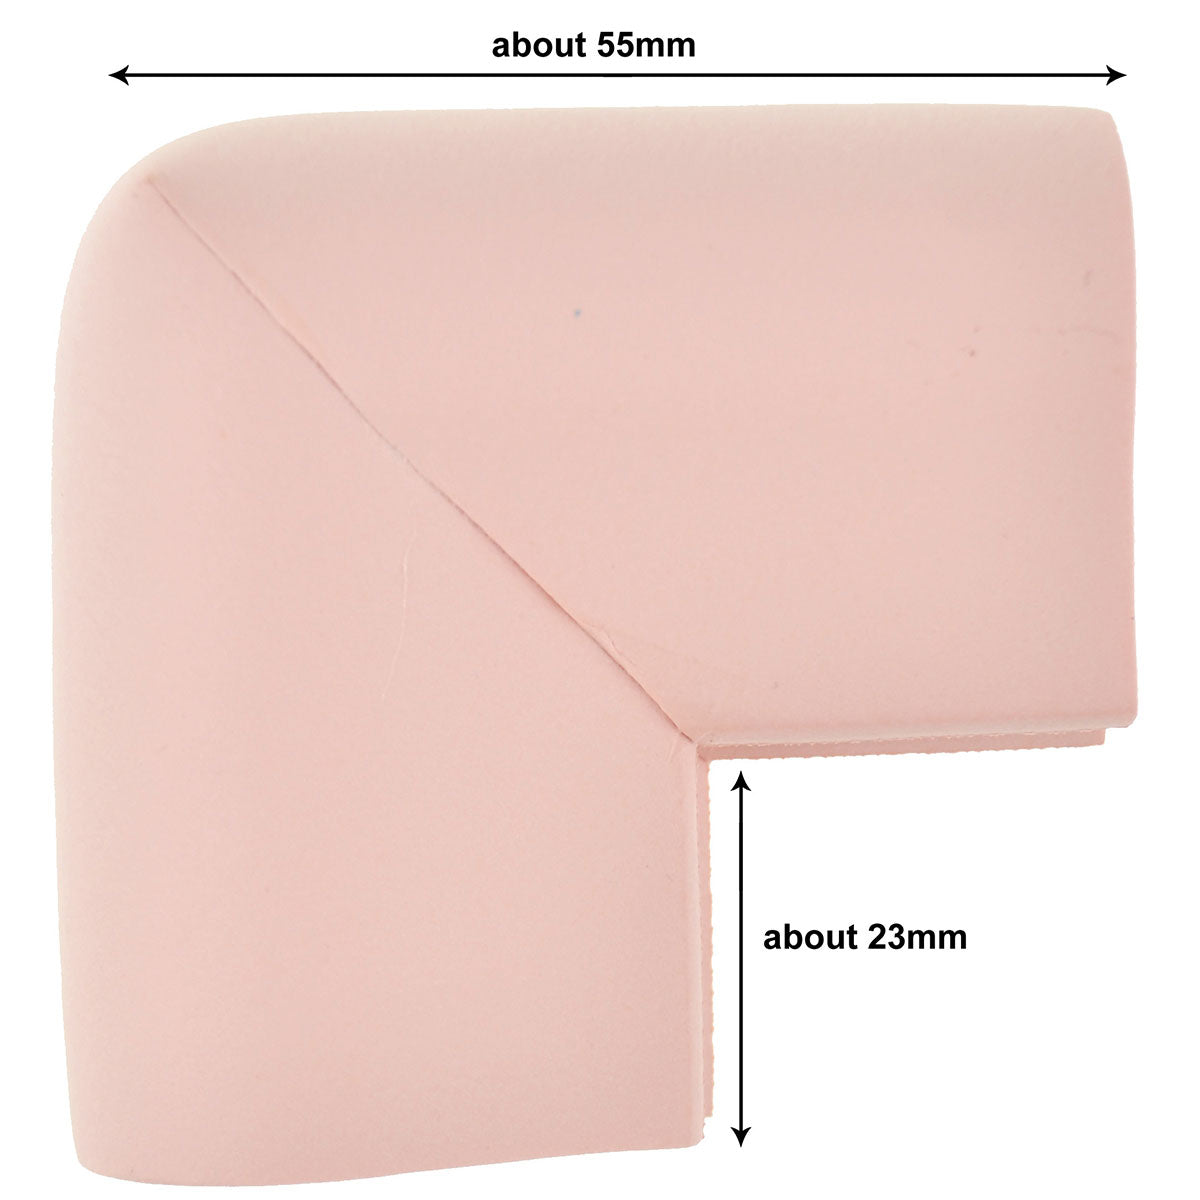 12 Pieces Pink U-Shaped Foam Corner Protectors